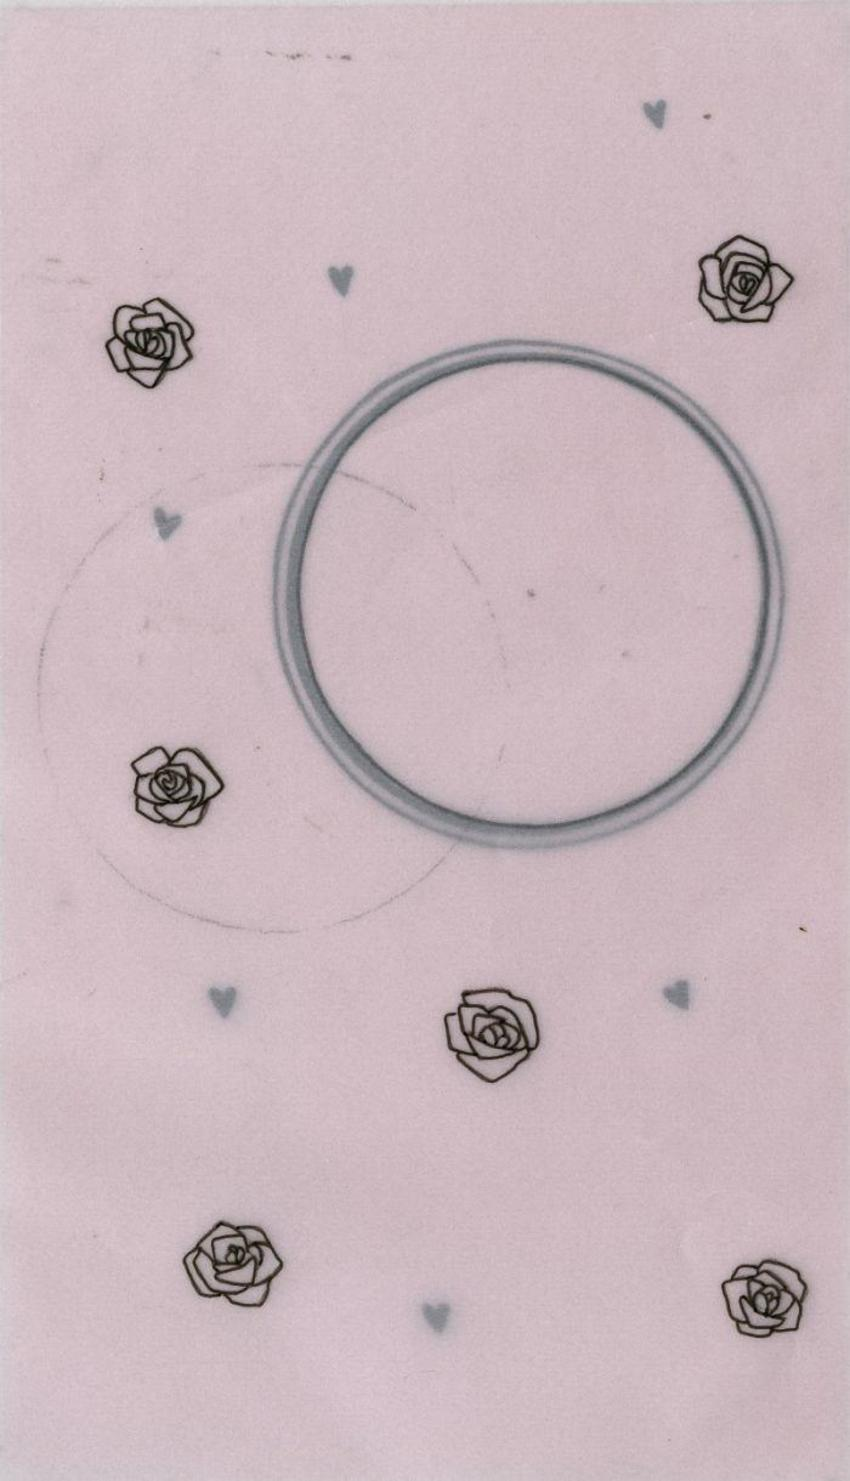 roses with ring.jpg